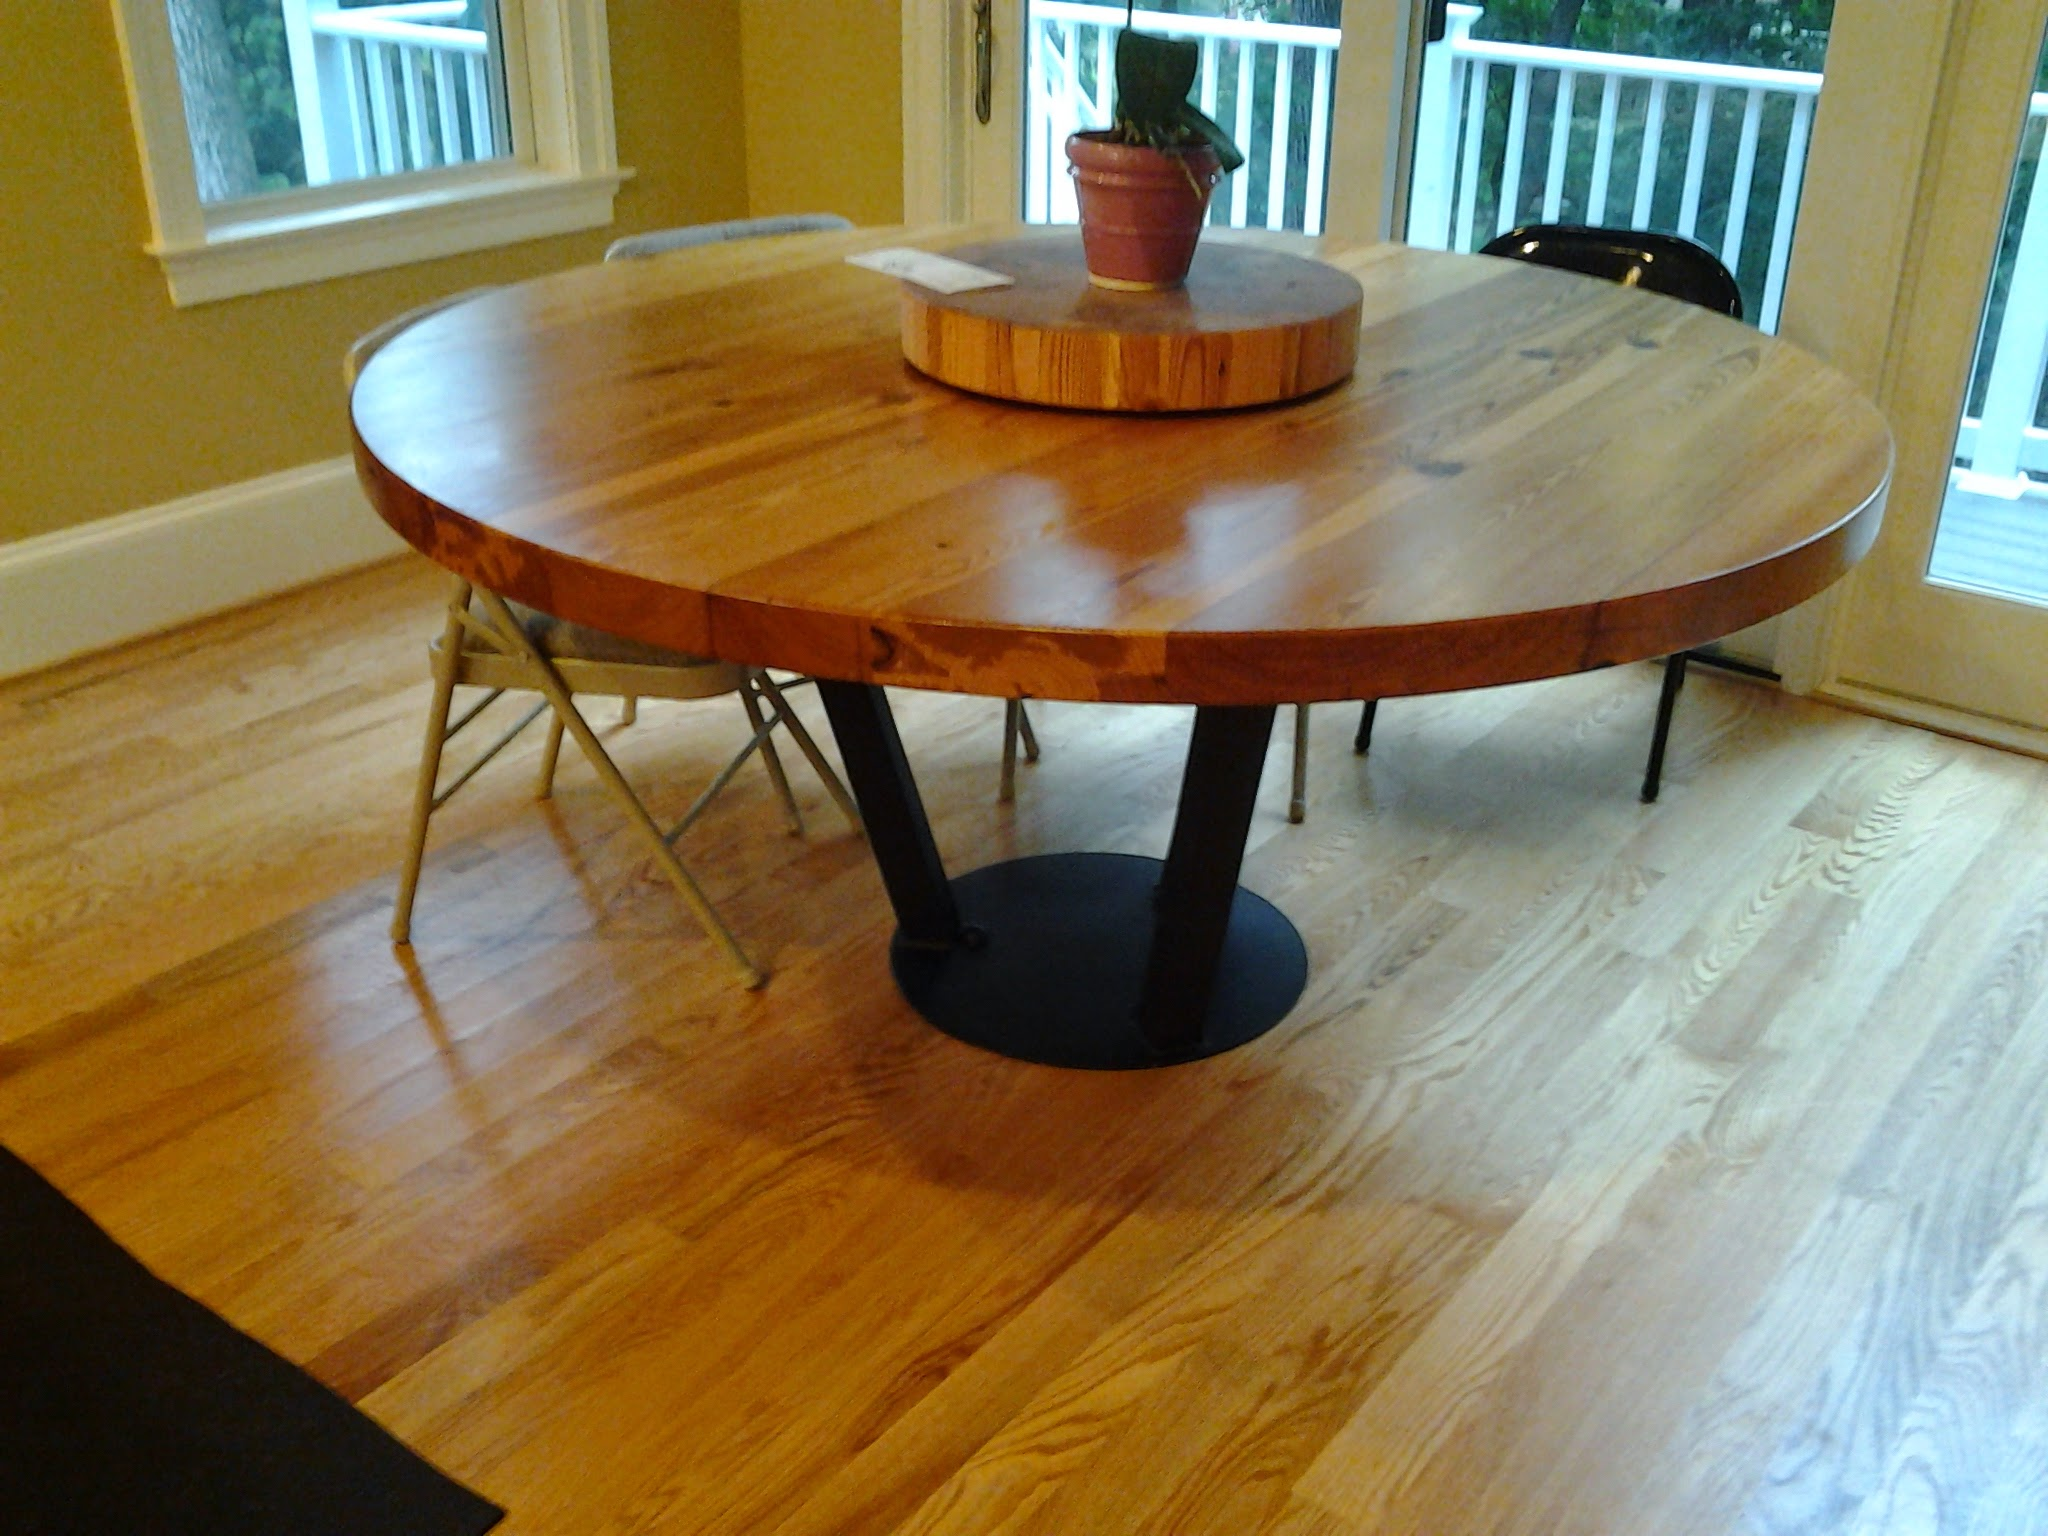 The top is reclaimed pine first cut in the early 19th century.  A round table can make for very efficient use of a small dining room.  For this style base, the piece is bolted to the architecture.